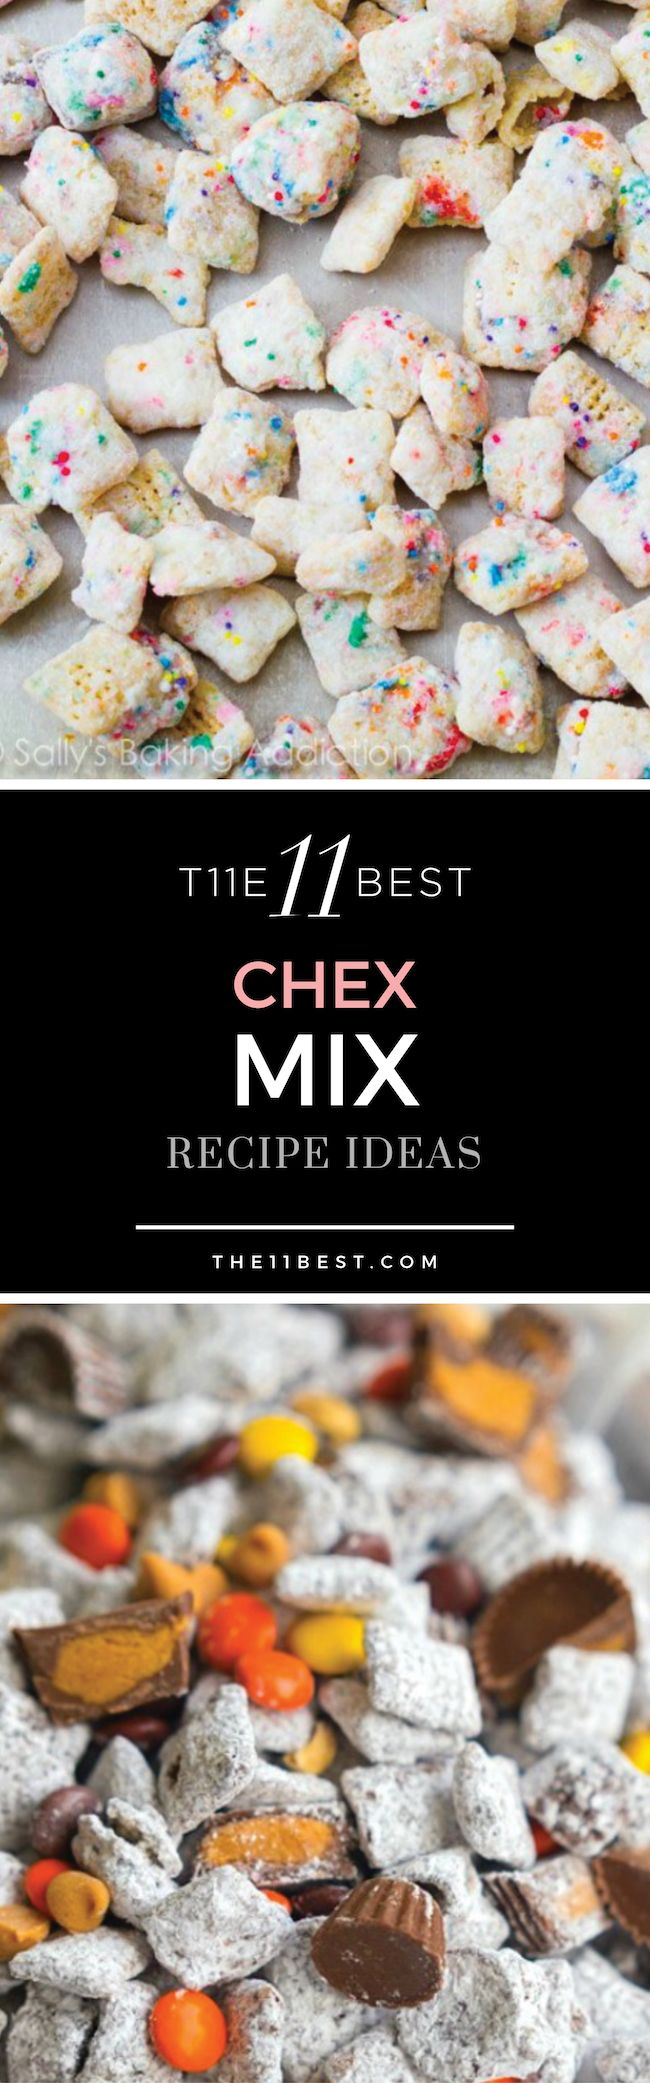 The 11 Best Chex Mix Recipes